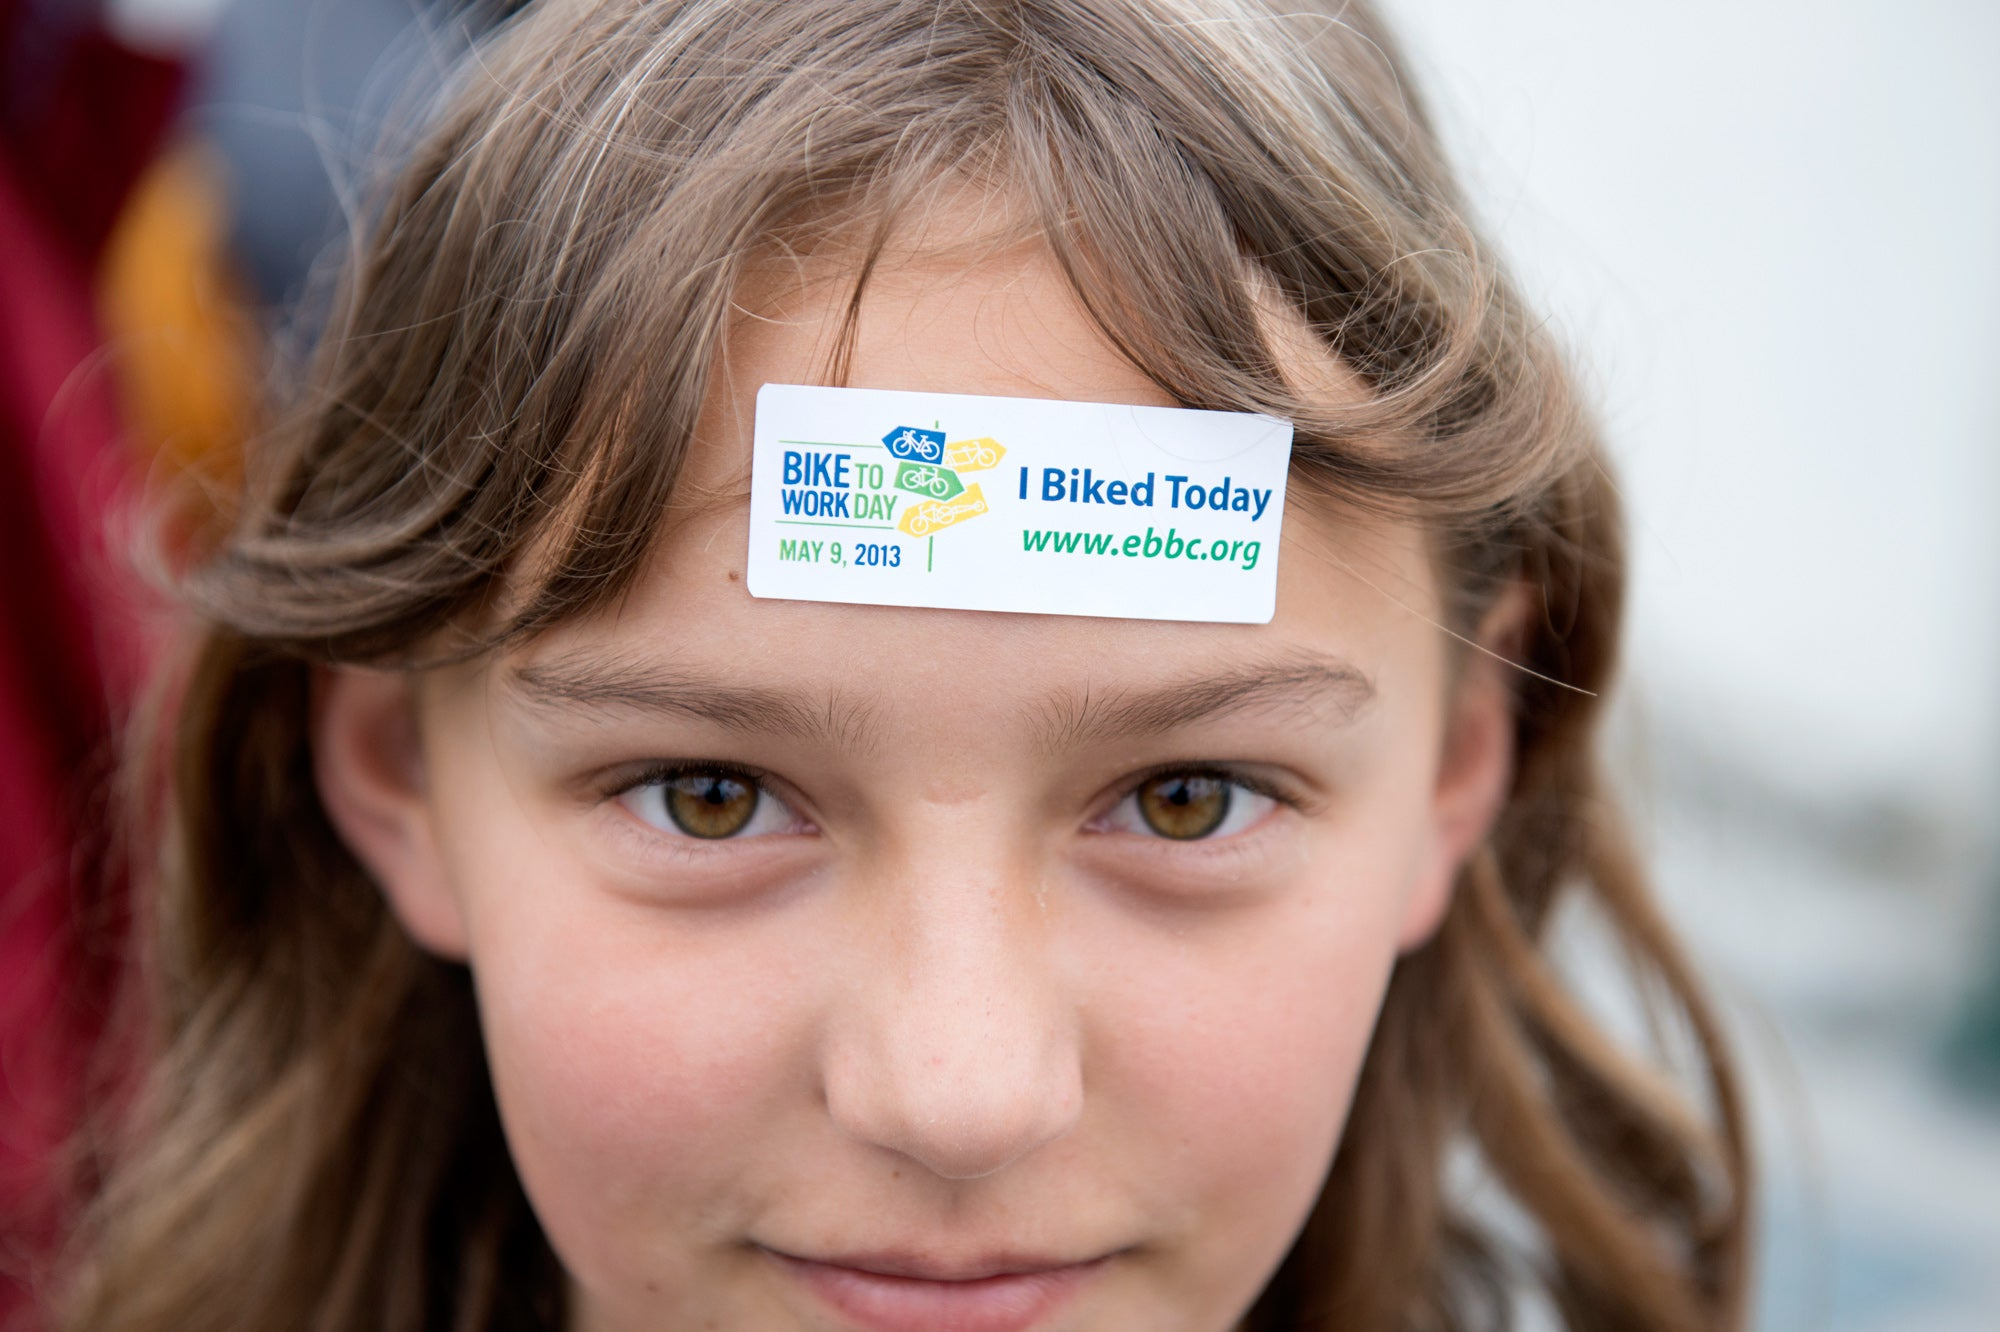 A young girl proudly displays the Bike to Work Day participation sticker at the site of the of a new bike path inaugurated today in Berkeley.